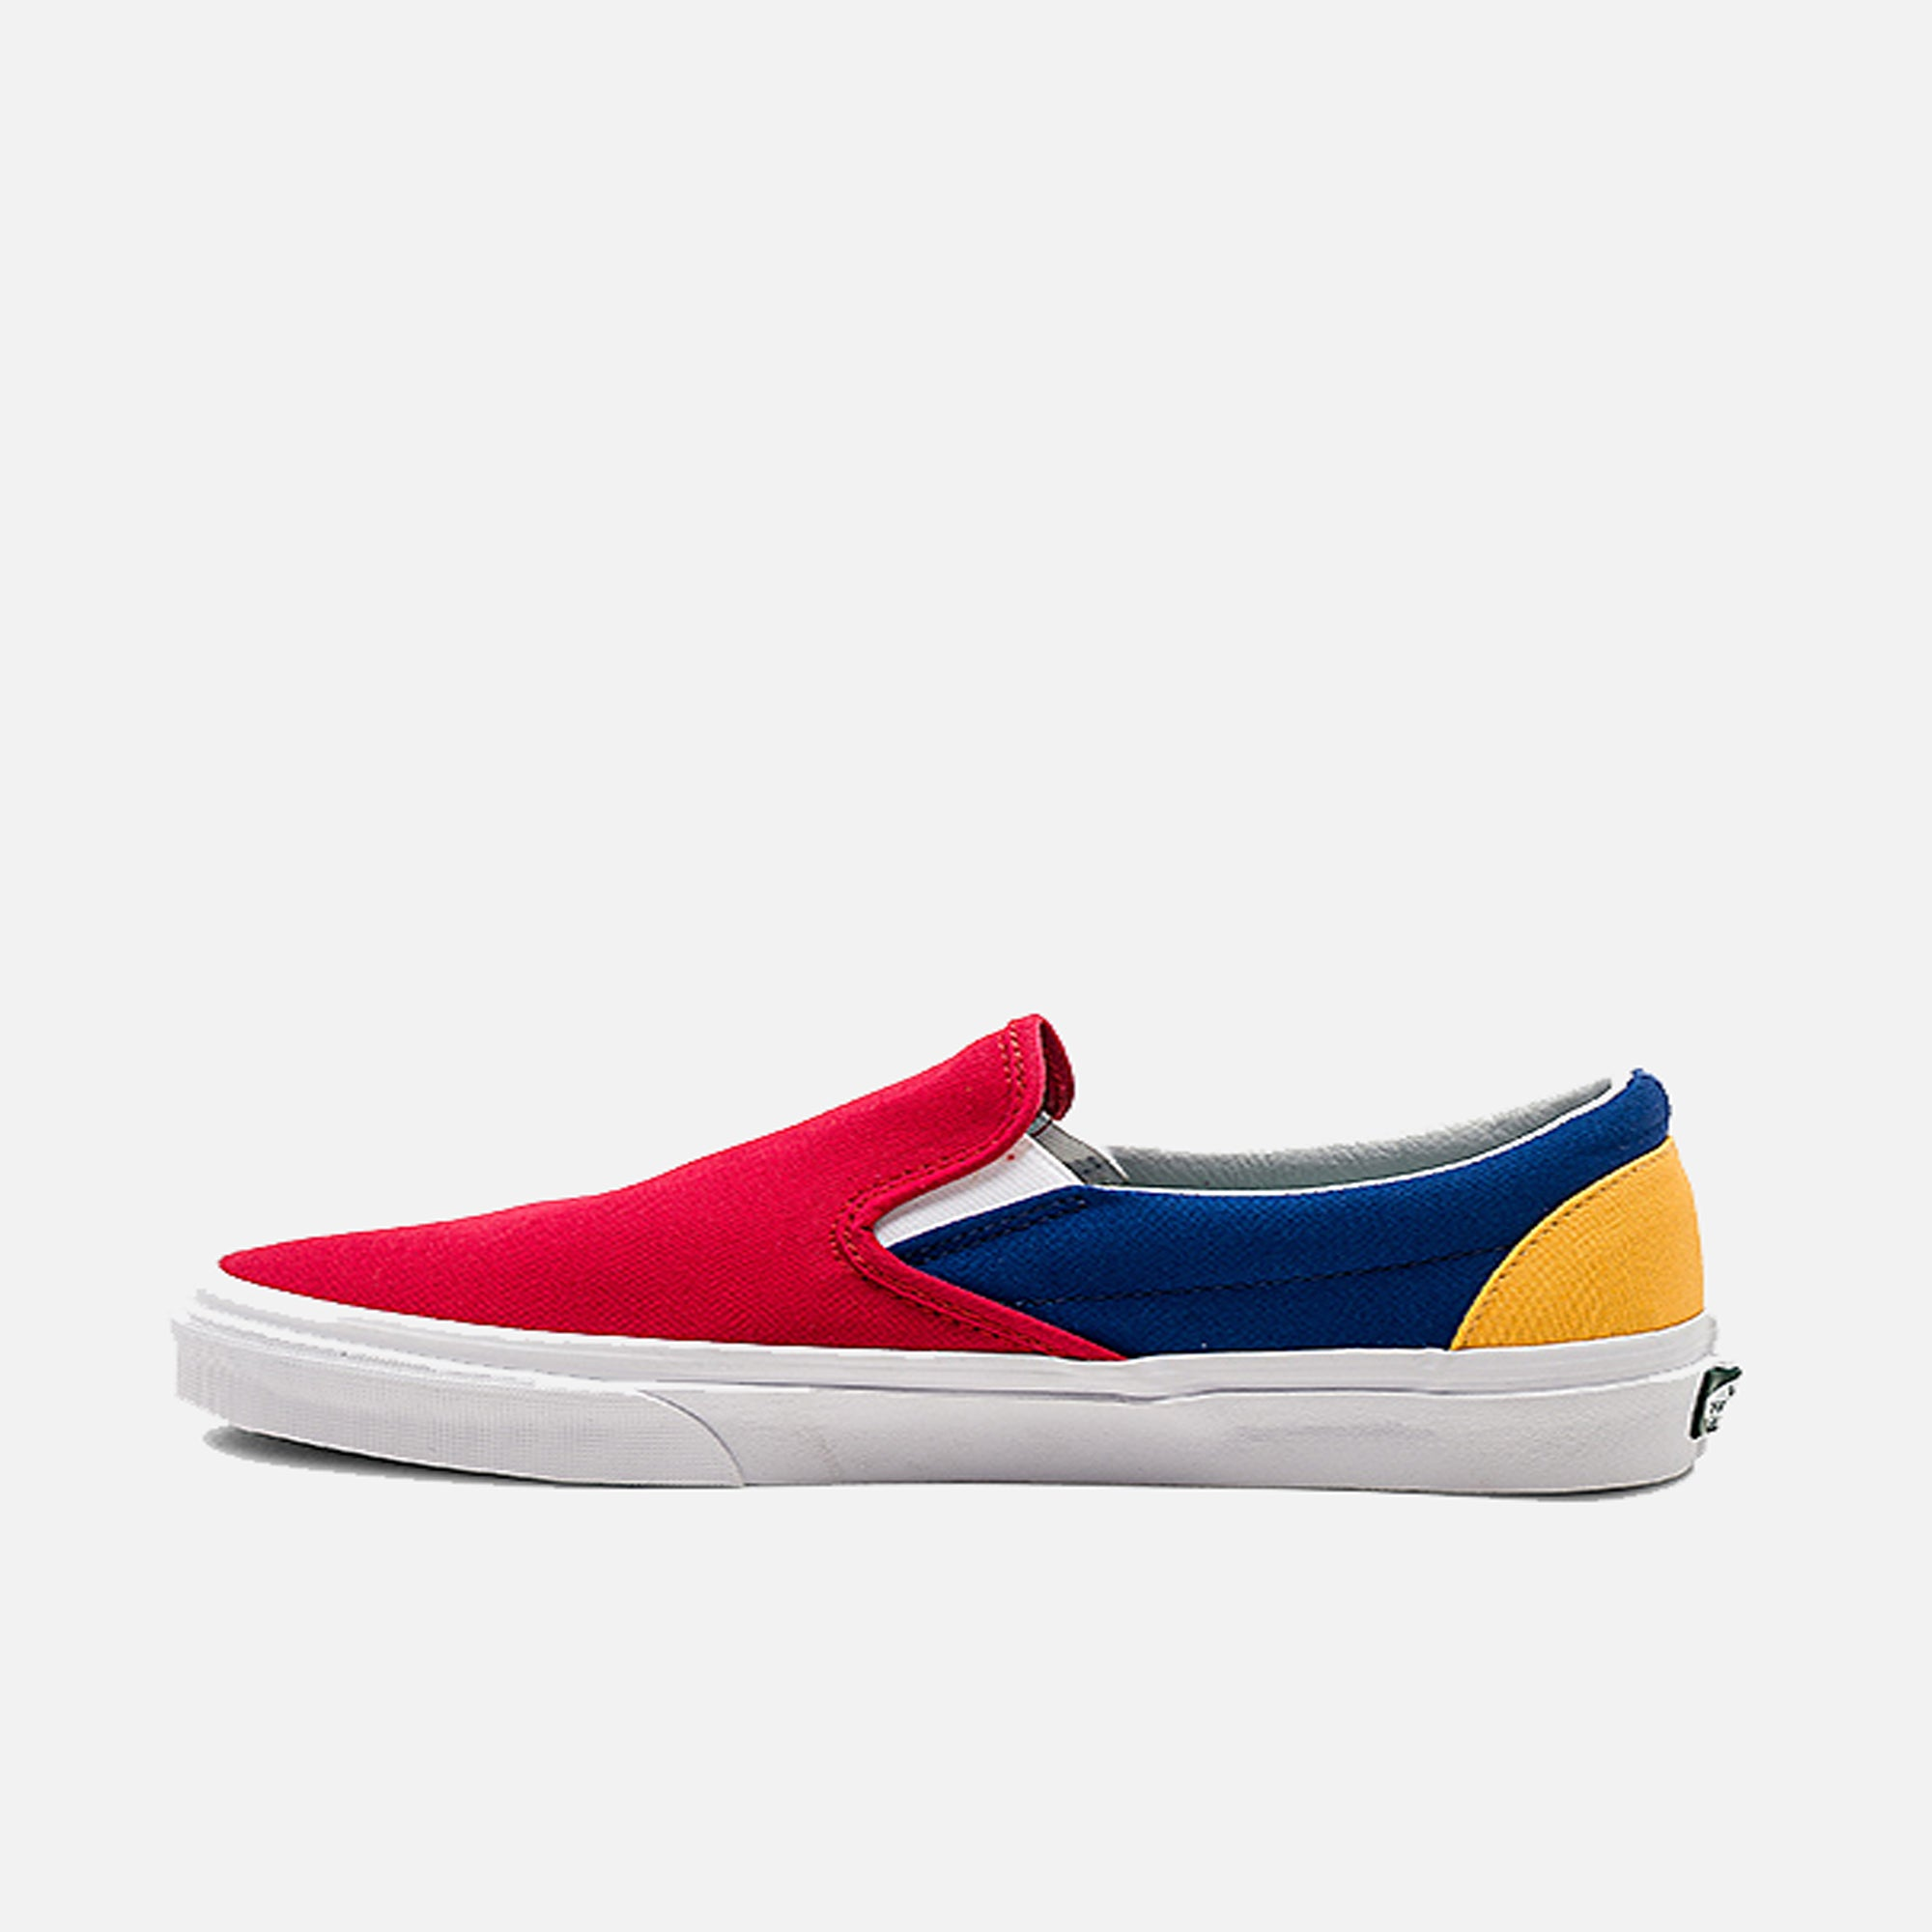 Vans Mens Yacht Club Classic Slip-On Shoes – PZOZO 386a74626